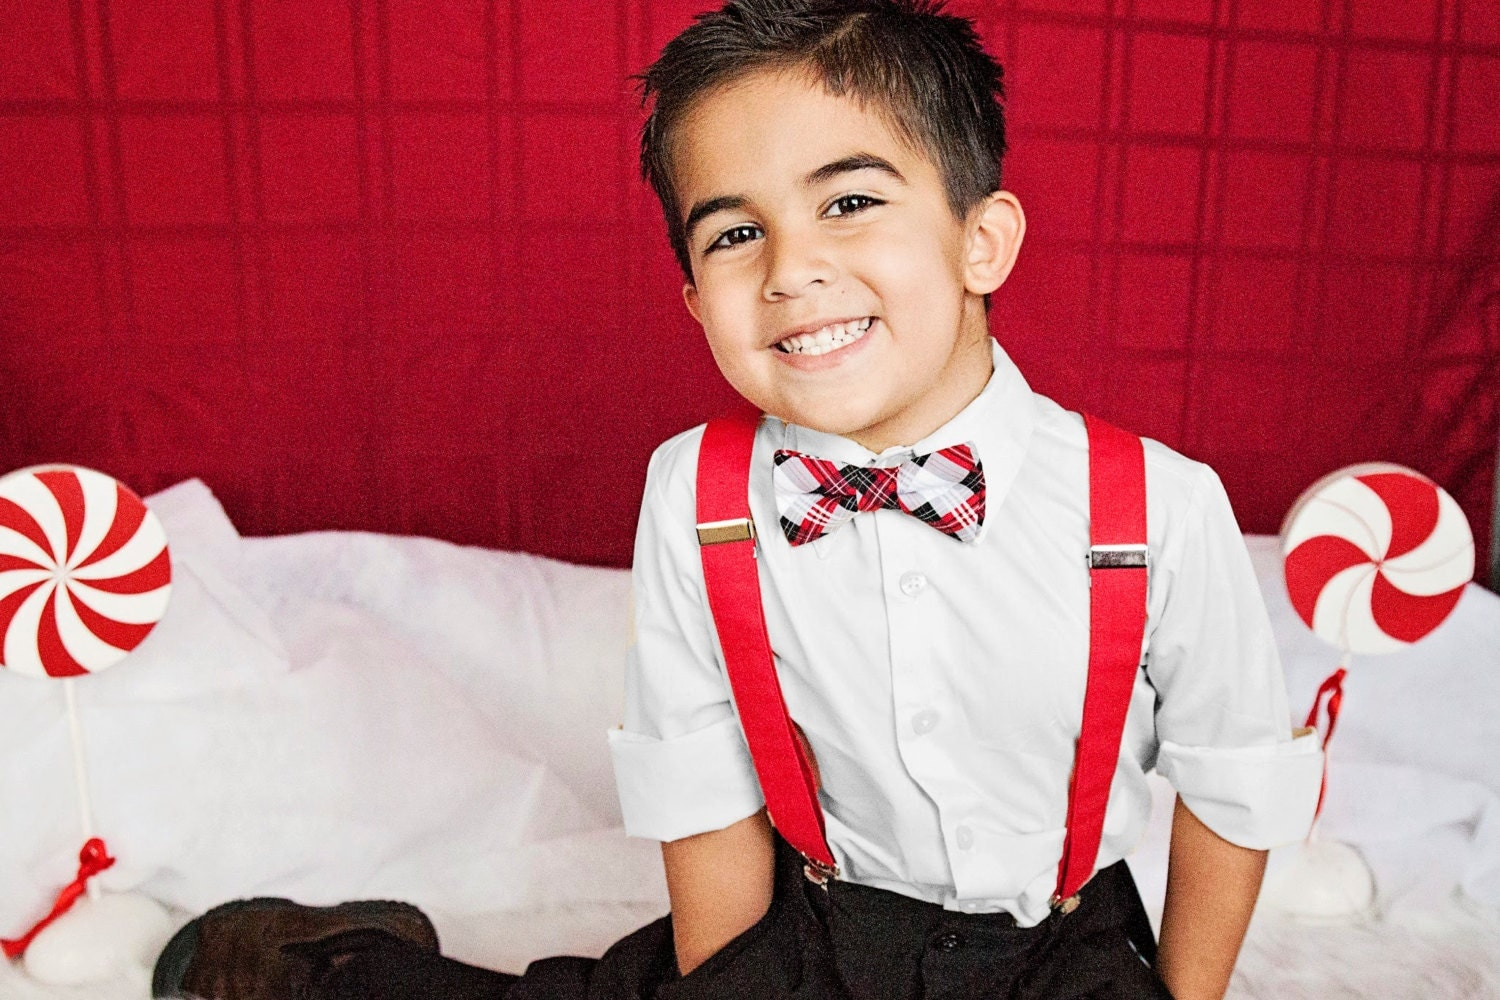 Shop for and buy suspenders for kids online at Macy's. Find suspenders for kids at Macy's. Macy's Presents: The Edit- A curated mix of fashion and inspiration Check It Out. Free Shipping with $49 purchase + Free Store Pickup. Contiguous US. Tommy Hilfiger Suspenders, Big Boys.